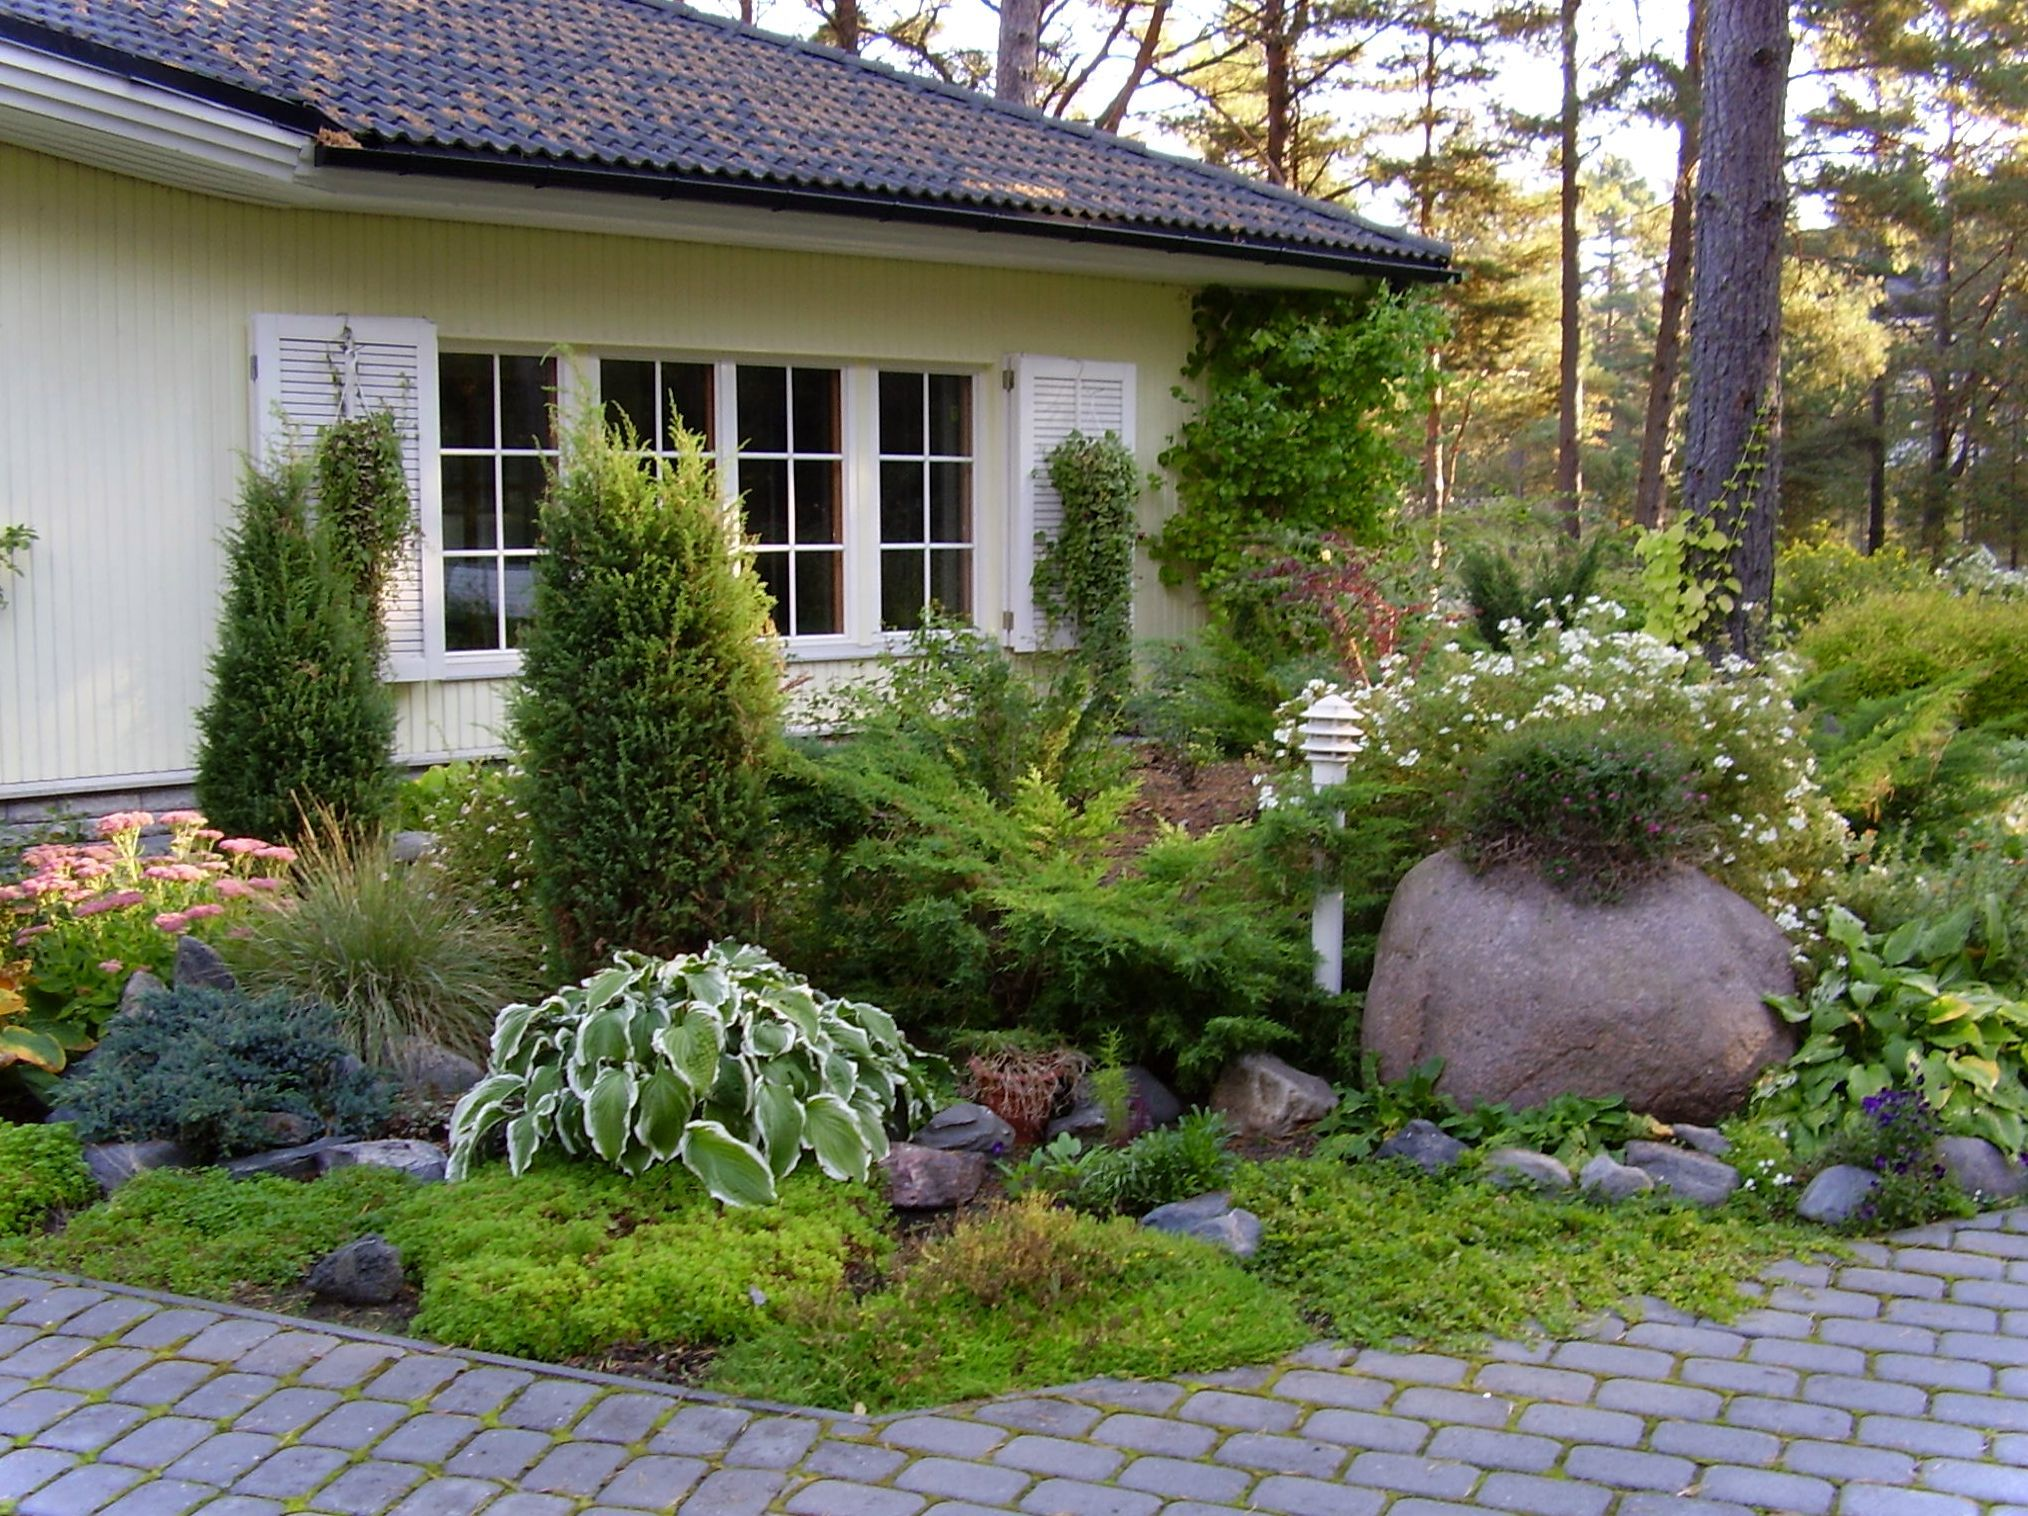 Find This Pin And More On Landscaping For An Enchanted Garden. Home Garden  Design ...